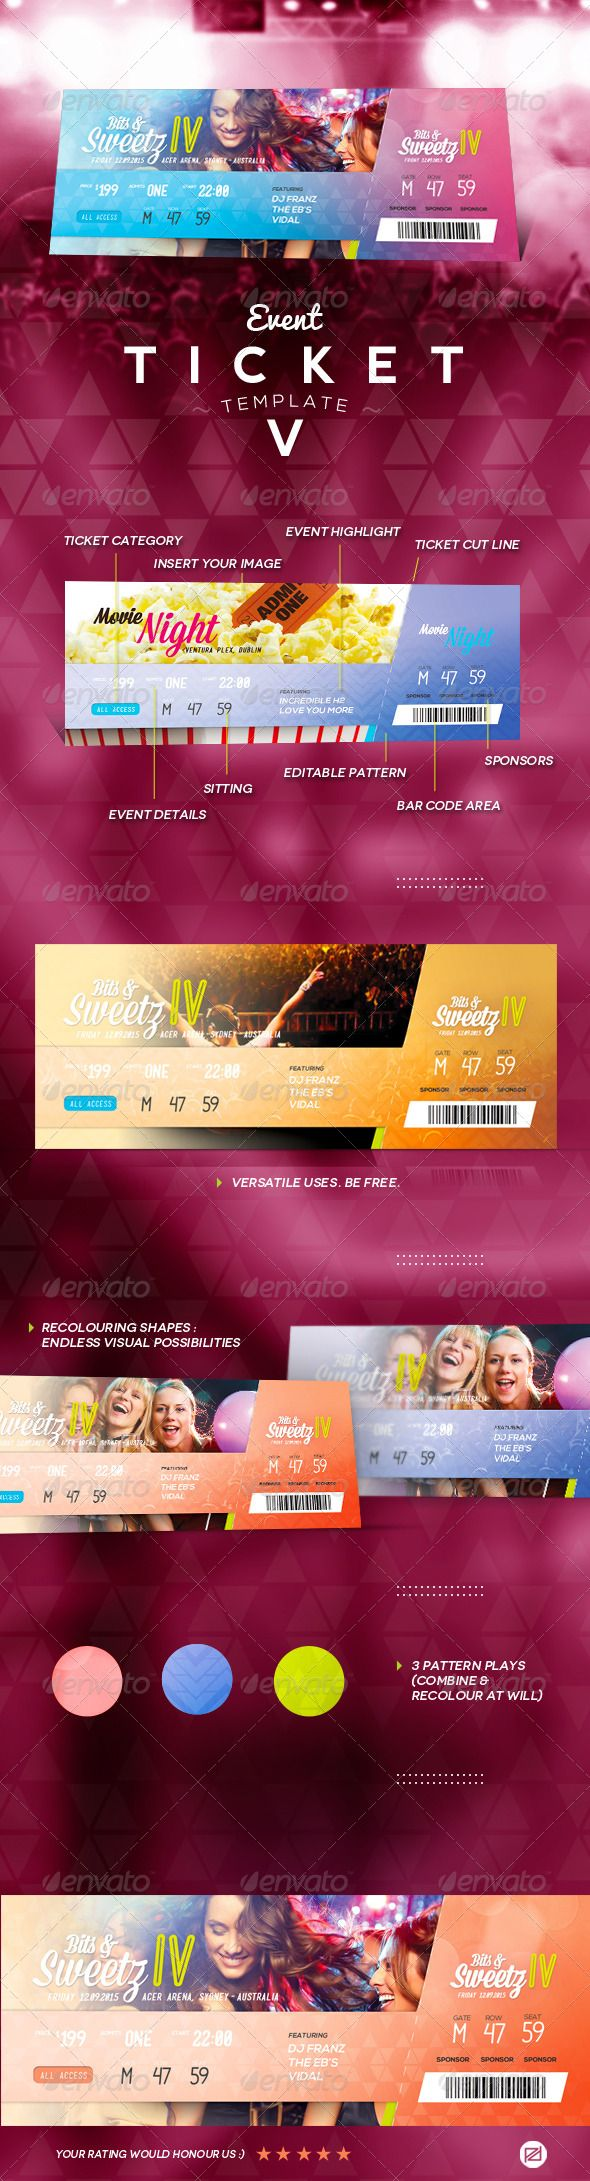 Best 25 Ticket template ideas – Free Event Ticket Maker